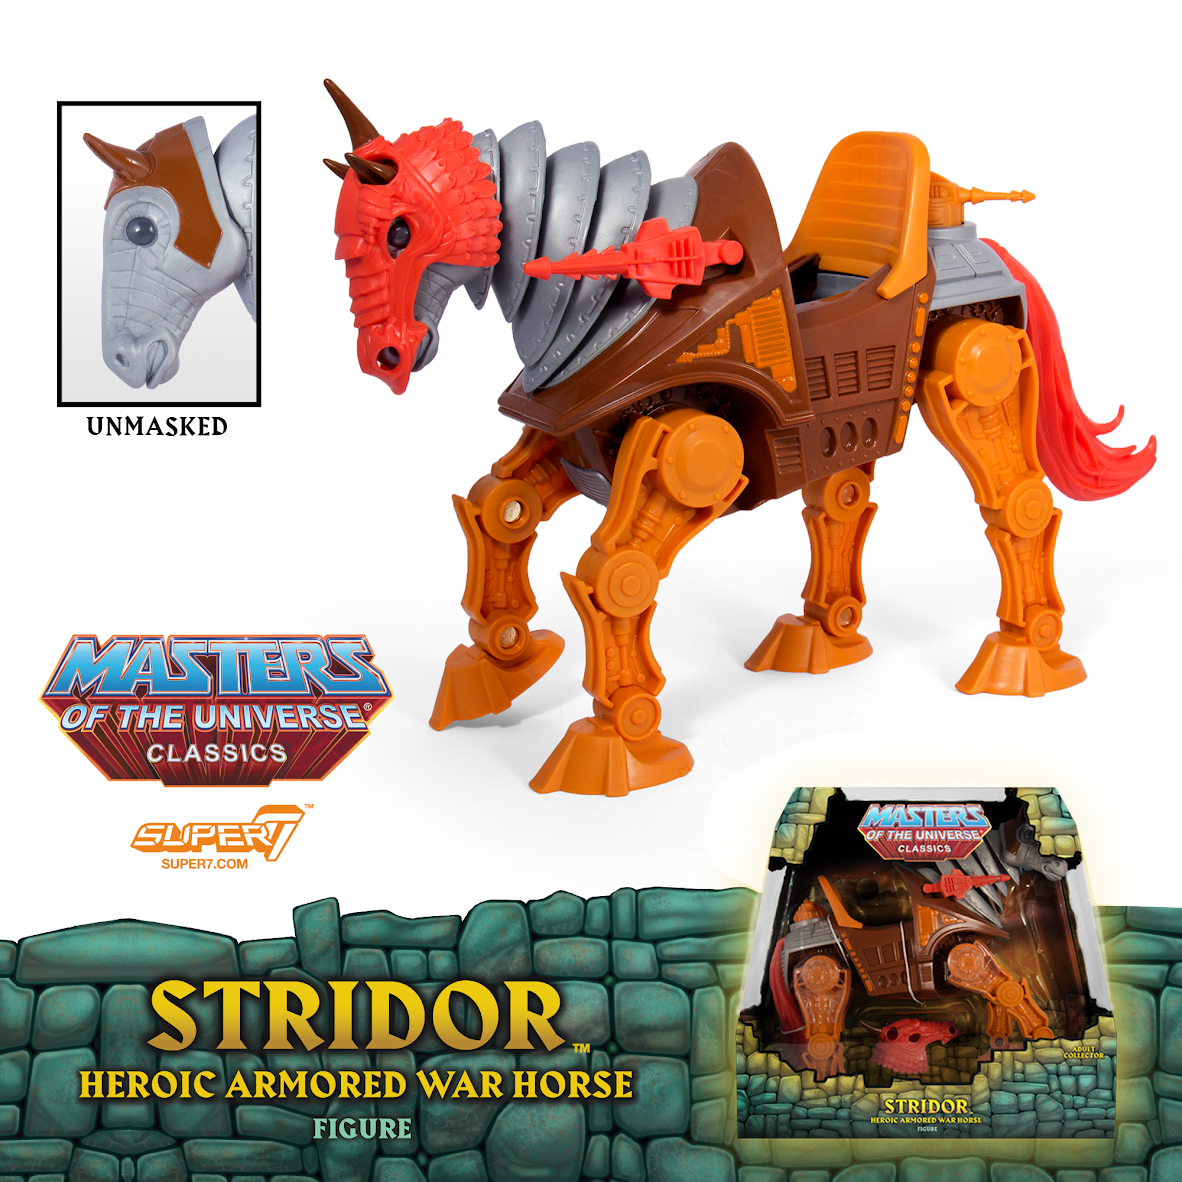 Pre-orders for Super7's Masters of the Universe Stridor the Heroic Armored  War Horse Figure starts today, Wednesday, April 25th at 12 noon Pacific  HERE for ...